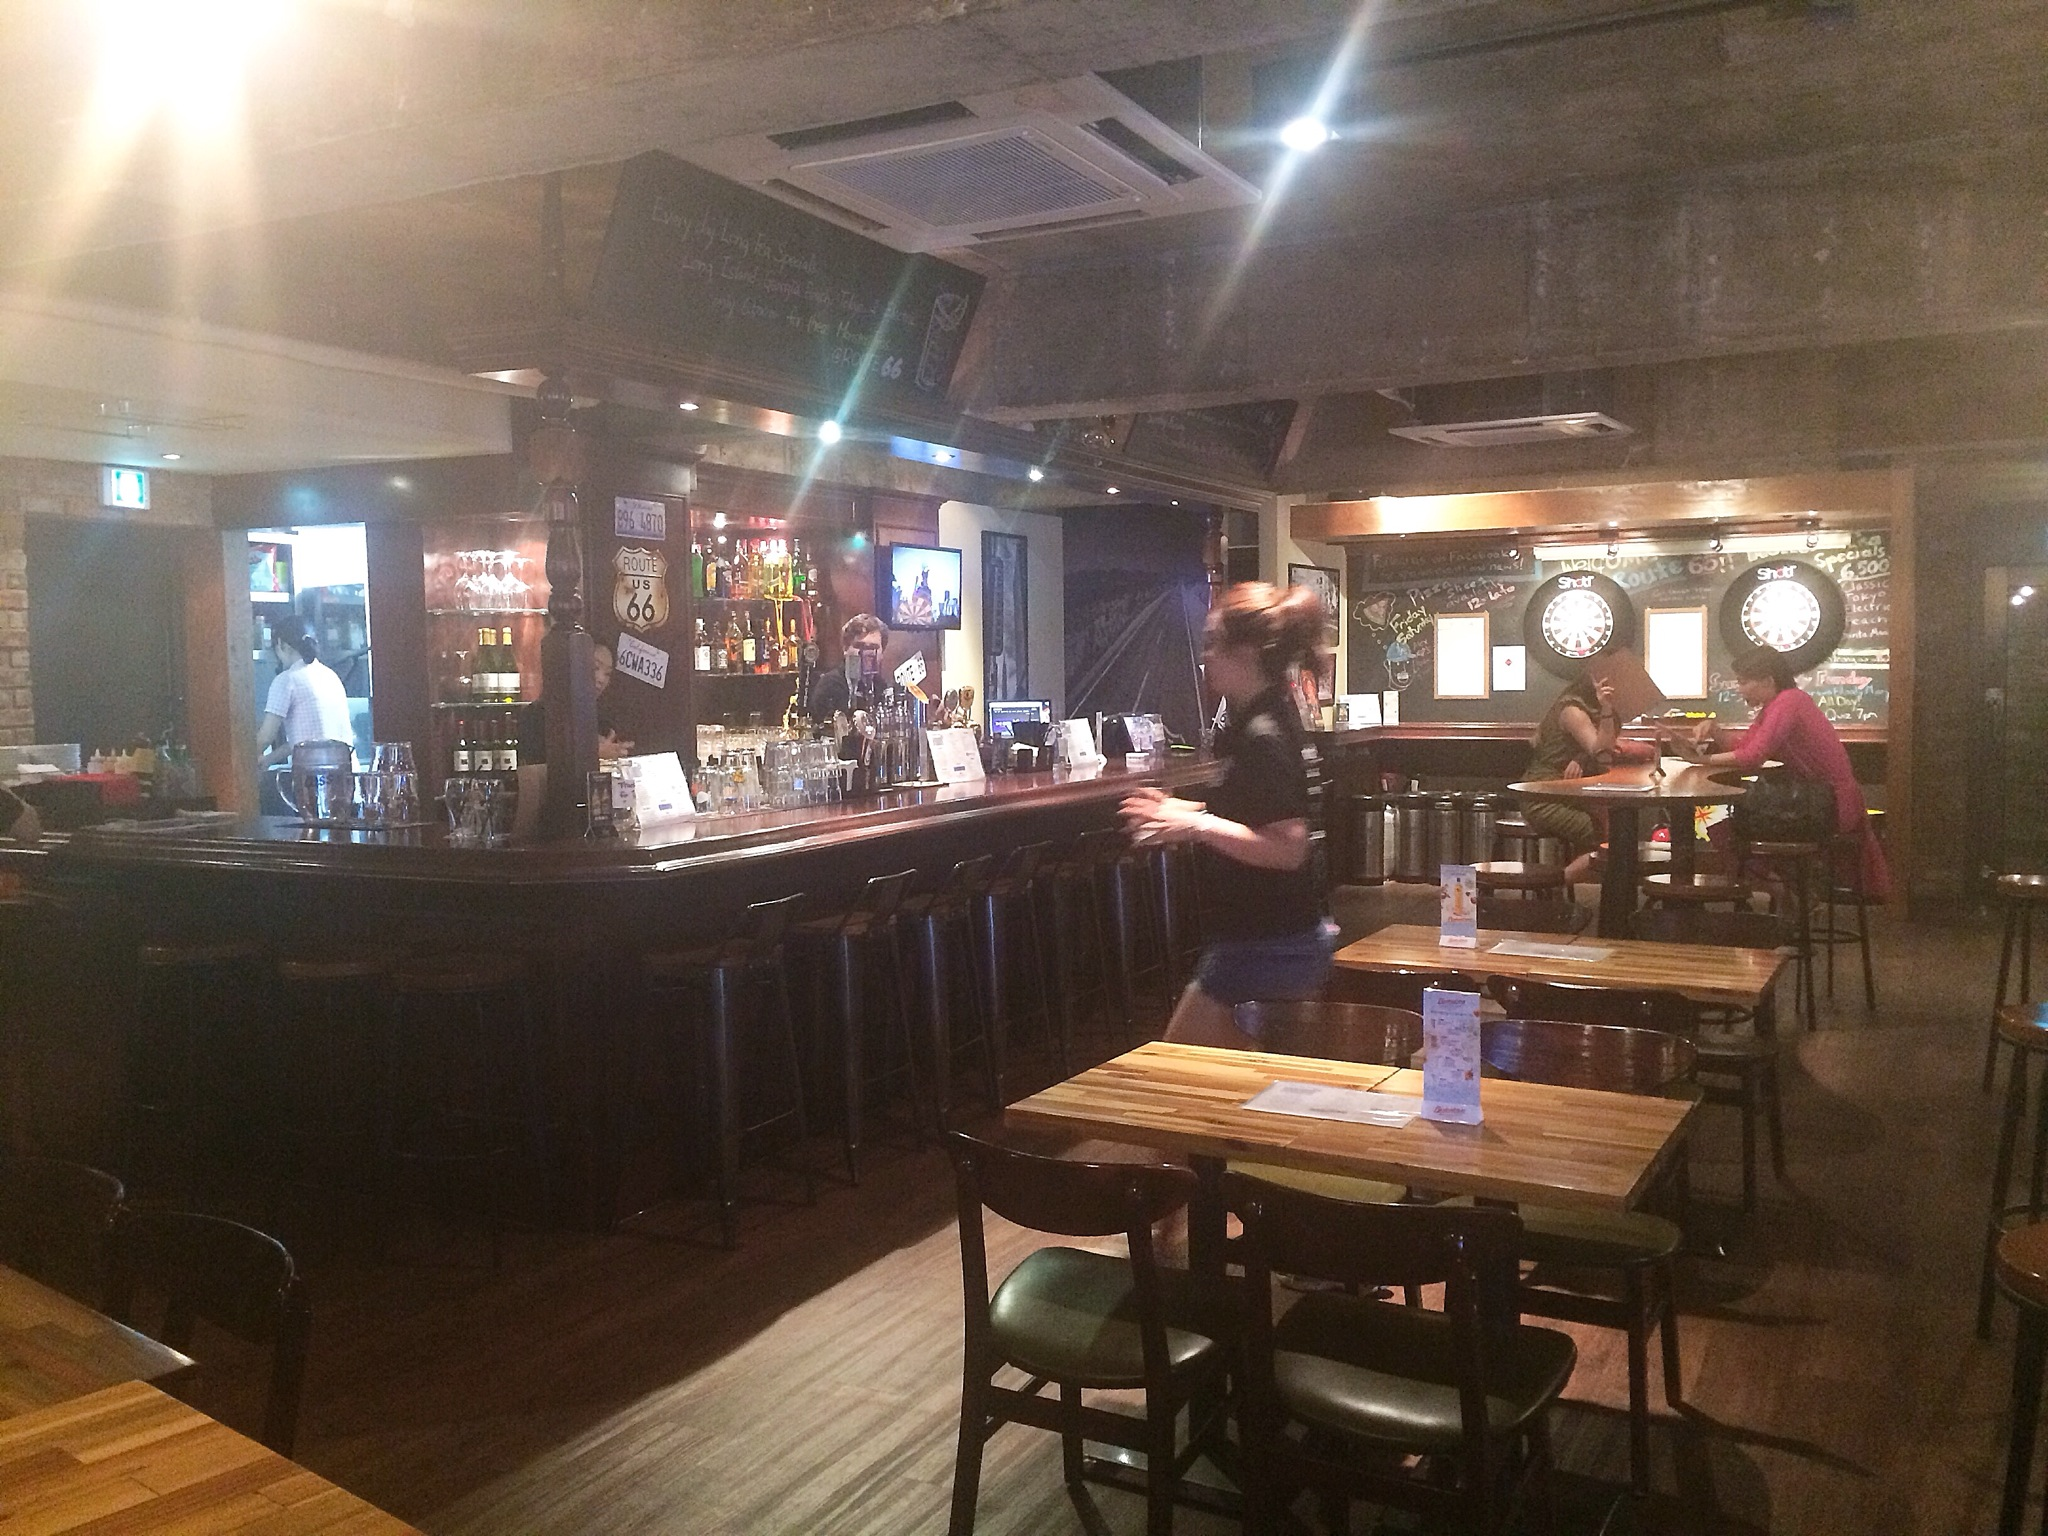 route 66 – a fat girl's food guide to eating in korea